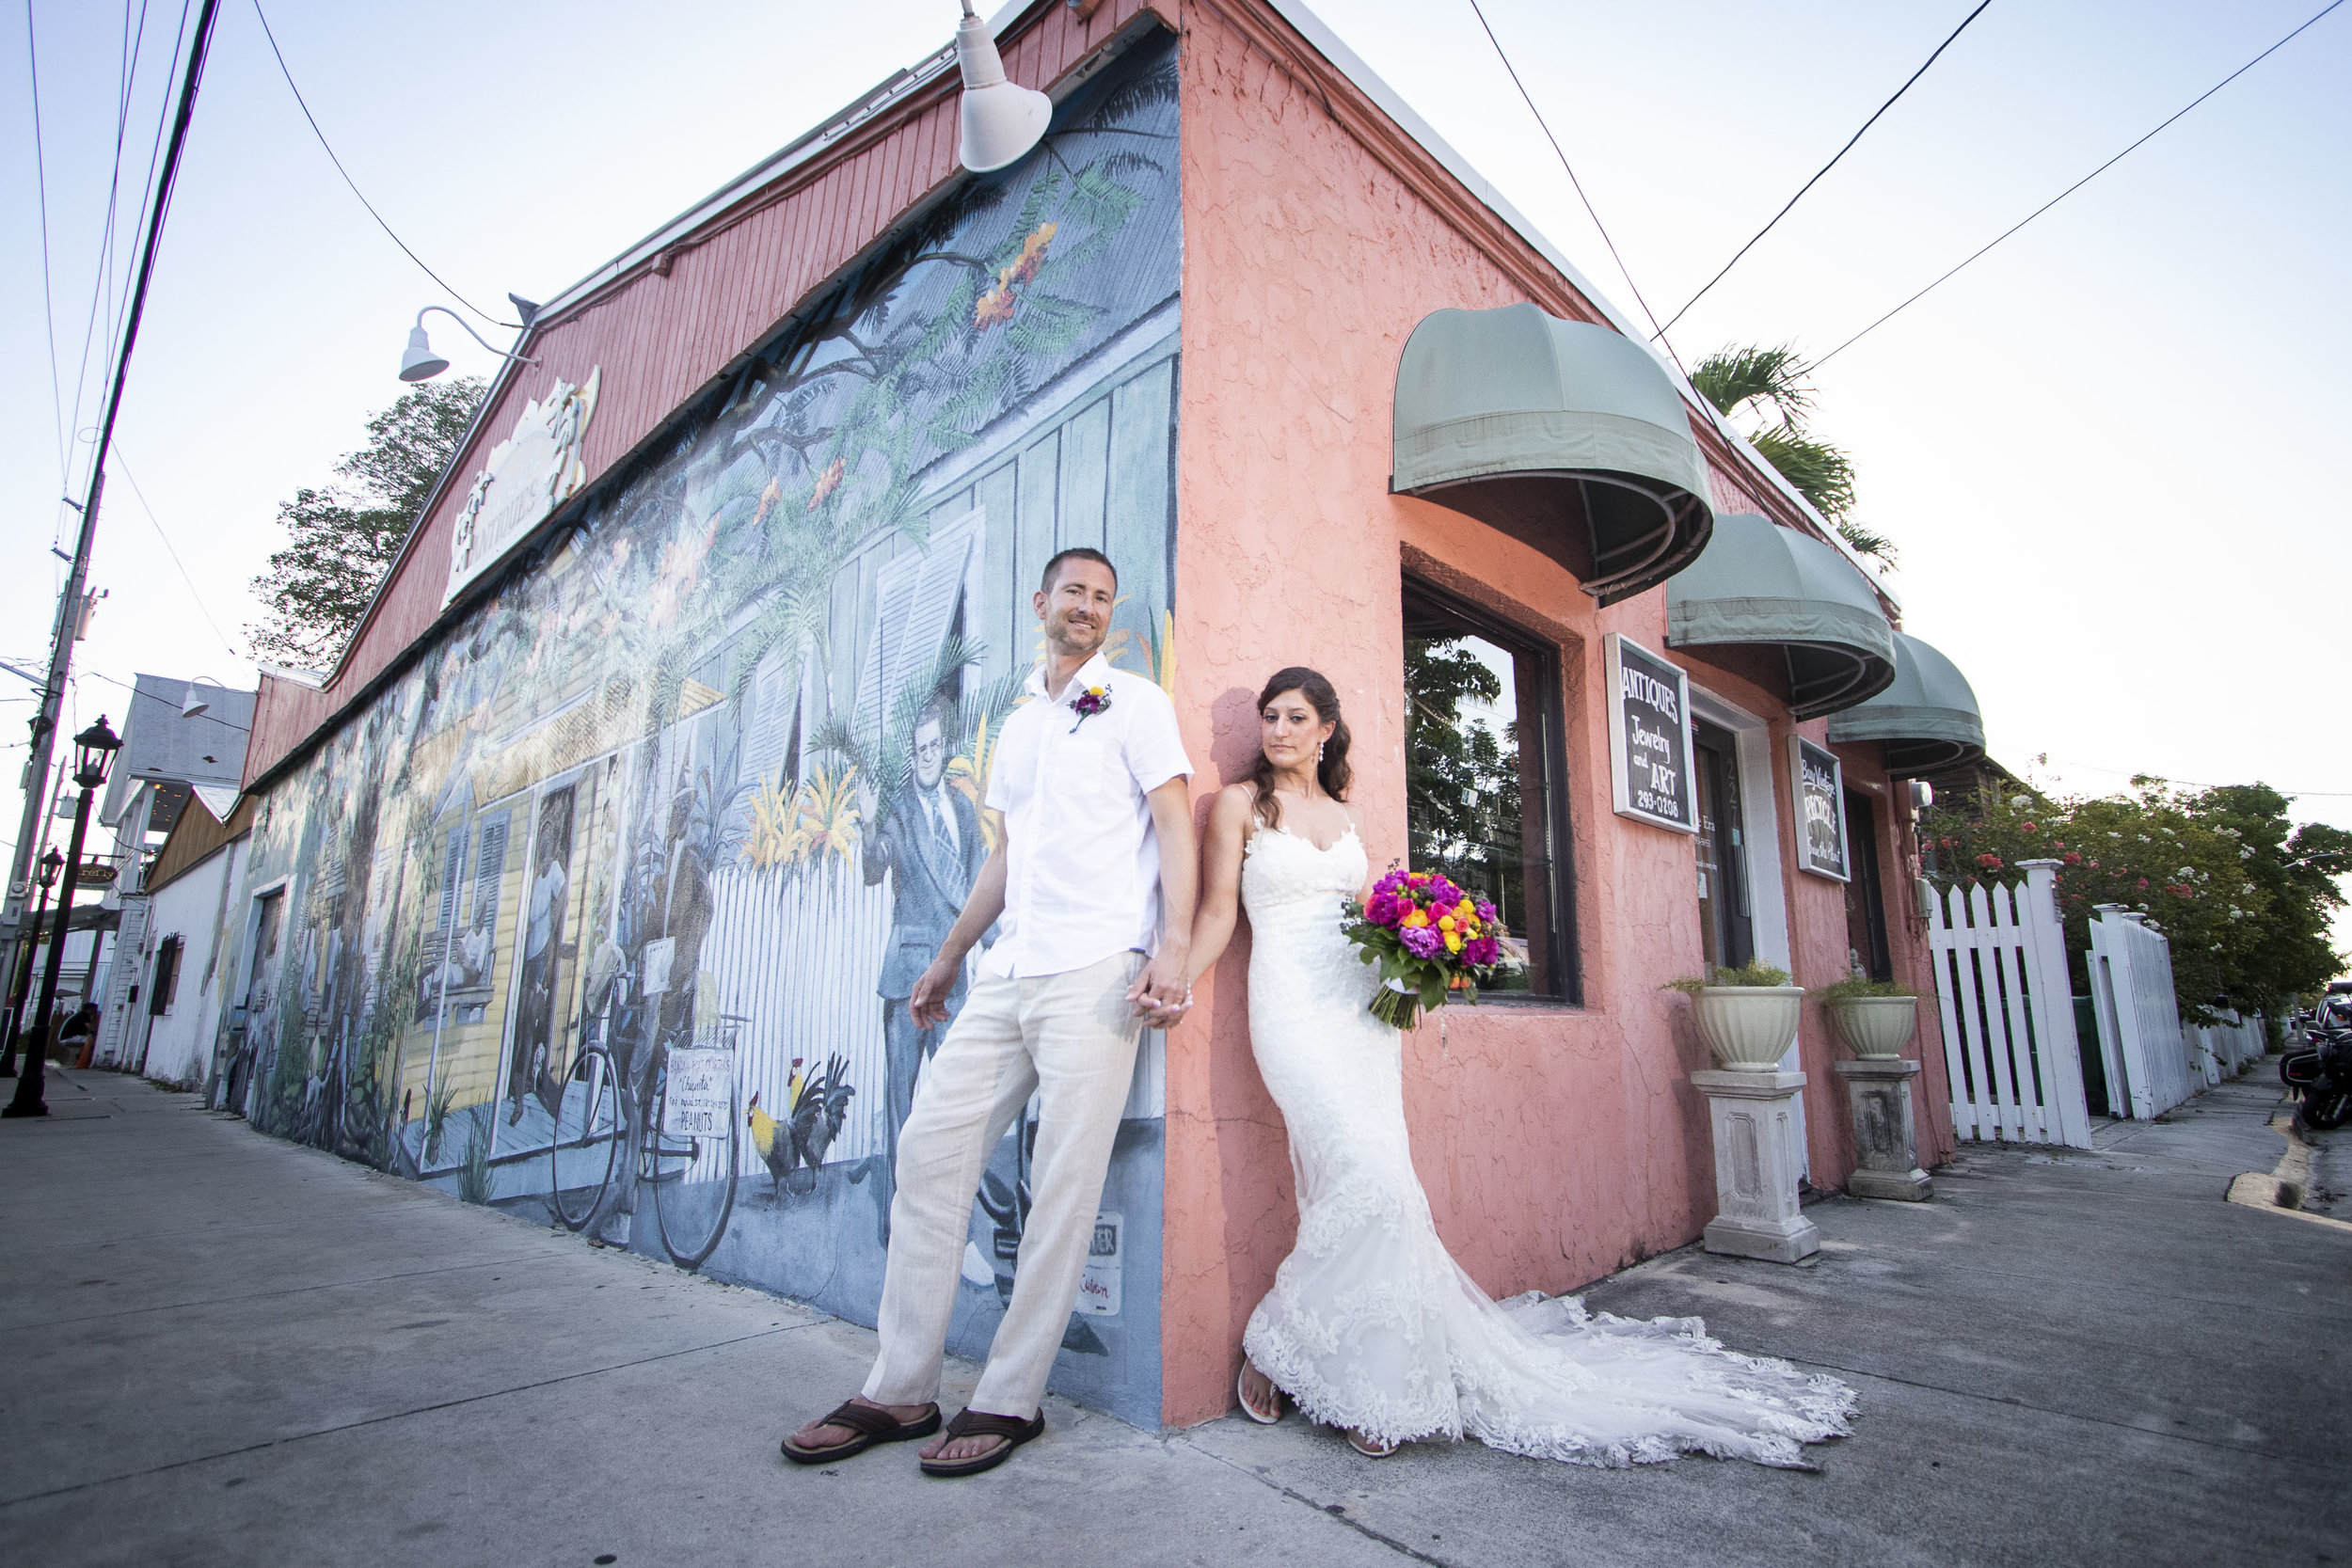 Around Key West photos with a recently married bride and groom